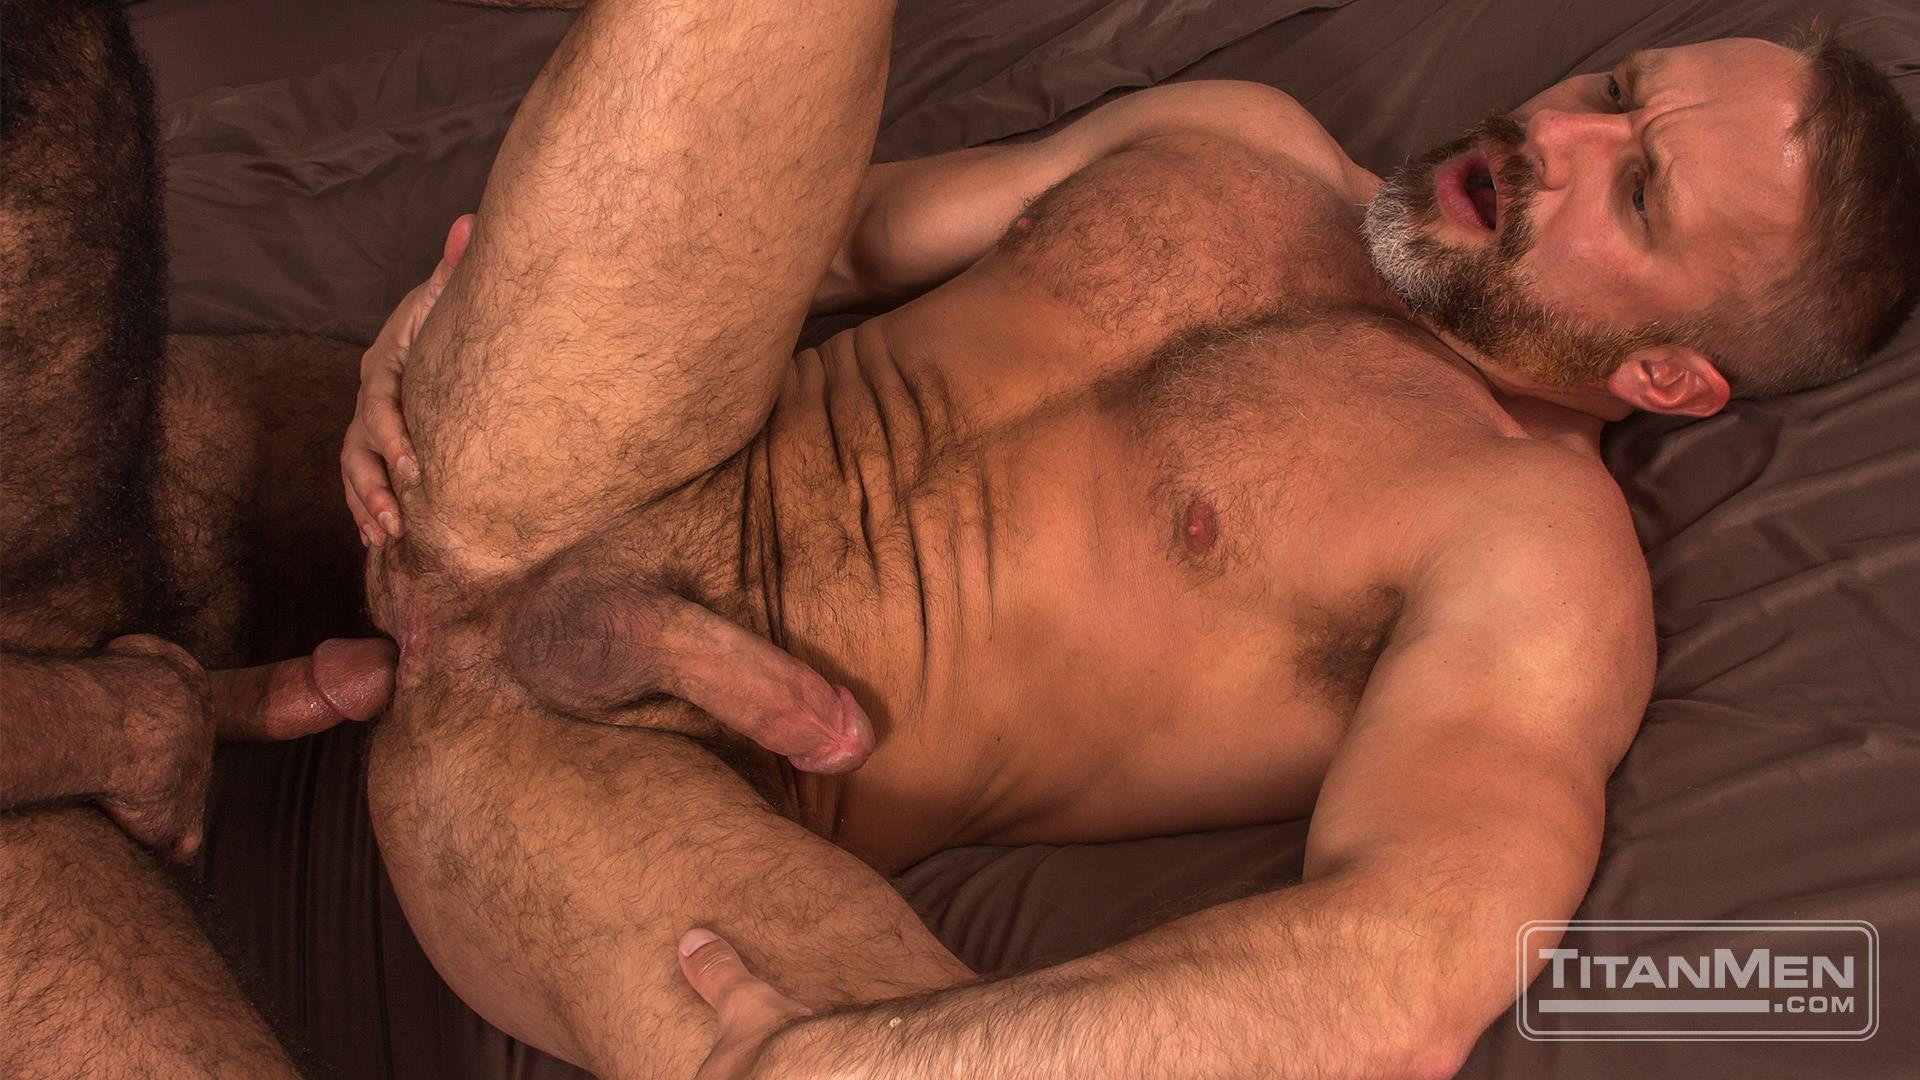 Titan-Men-Dirk-Caber-and-Daymin-Voss-Hairy-Muscle-Daddy-and-Big-Black-Dick-Fucking-30 Hairy Muscle Daddy Dirk Caber Flip Fucking With Hairy Black Muscle Hunk Daymin Voss